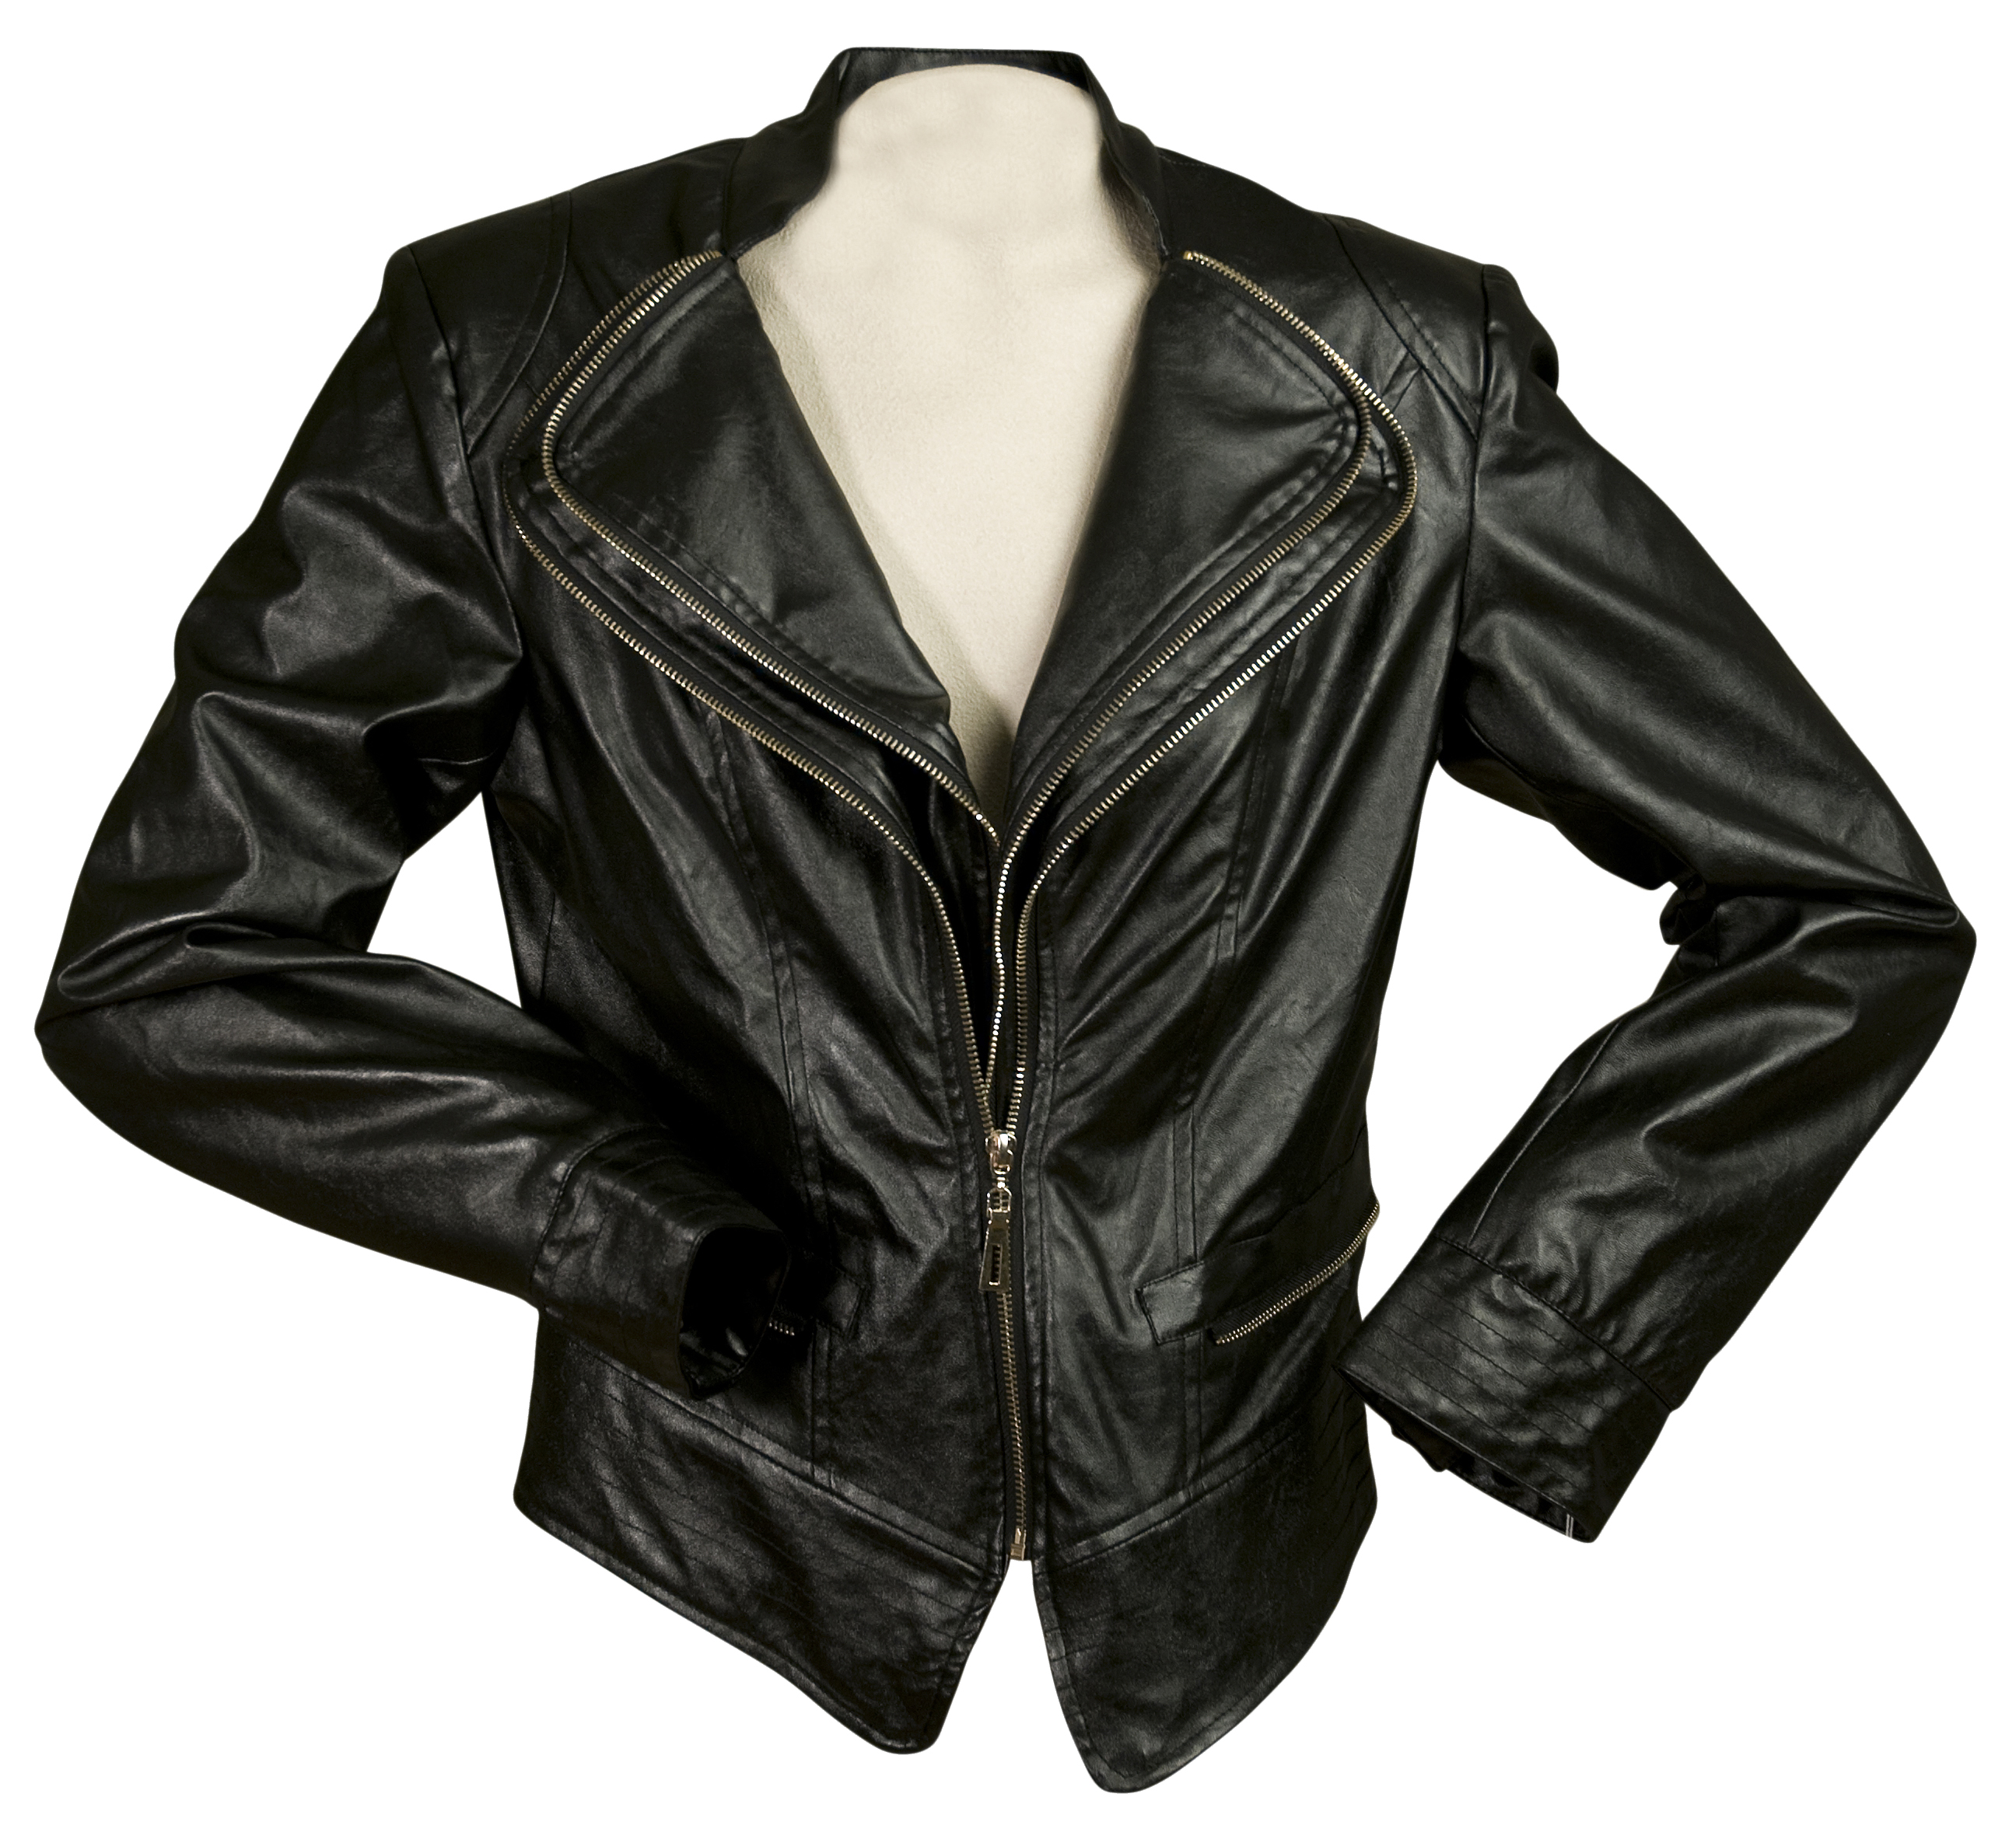 INSIGHT Faux Leather Jacket with Zipper Front